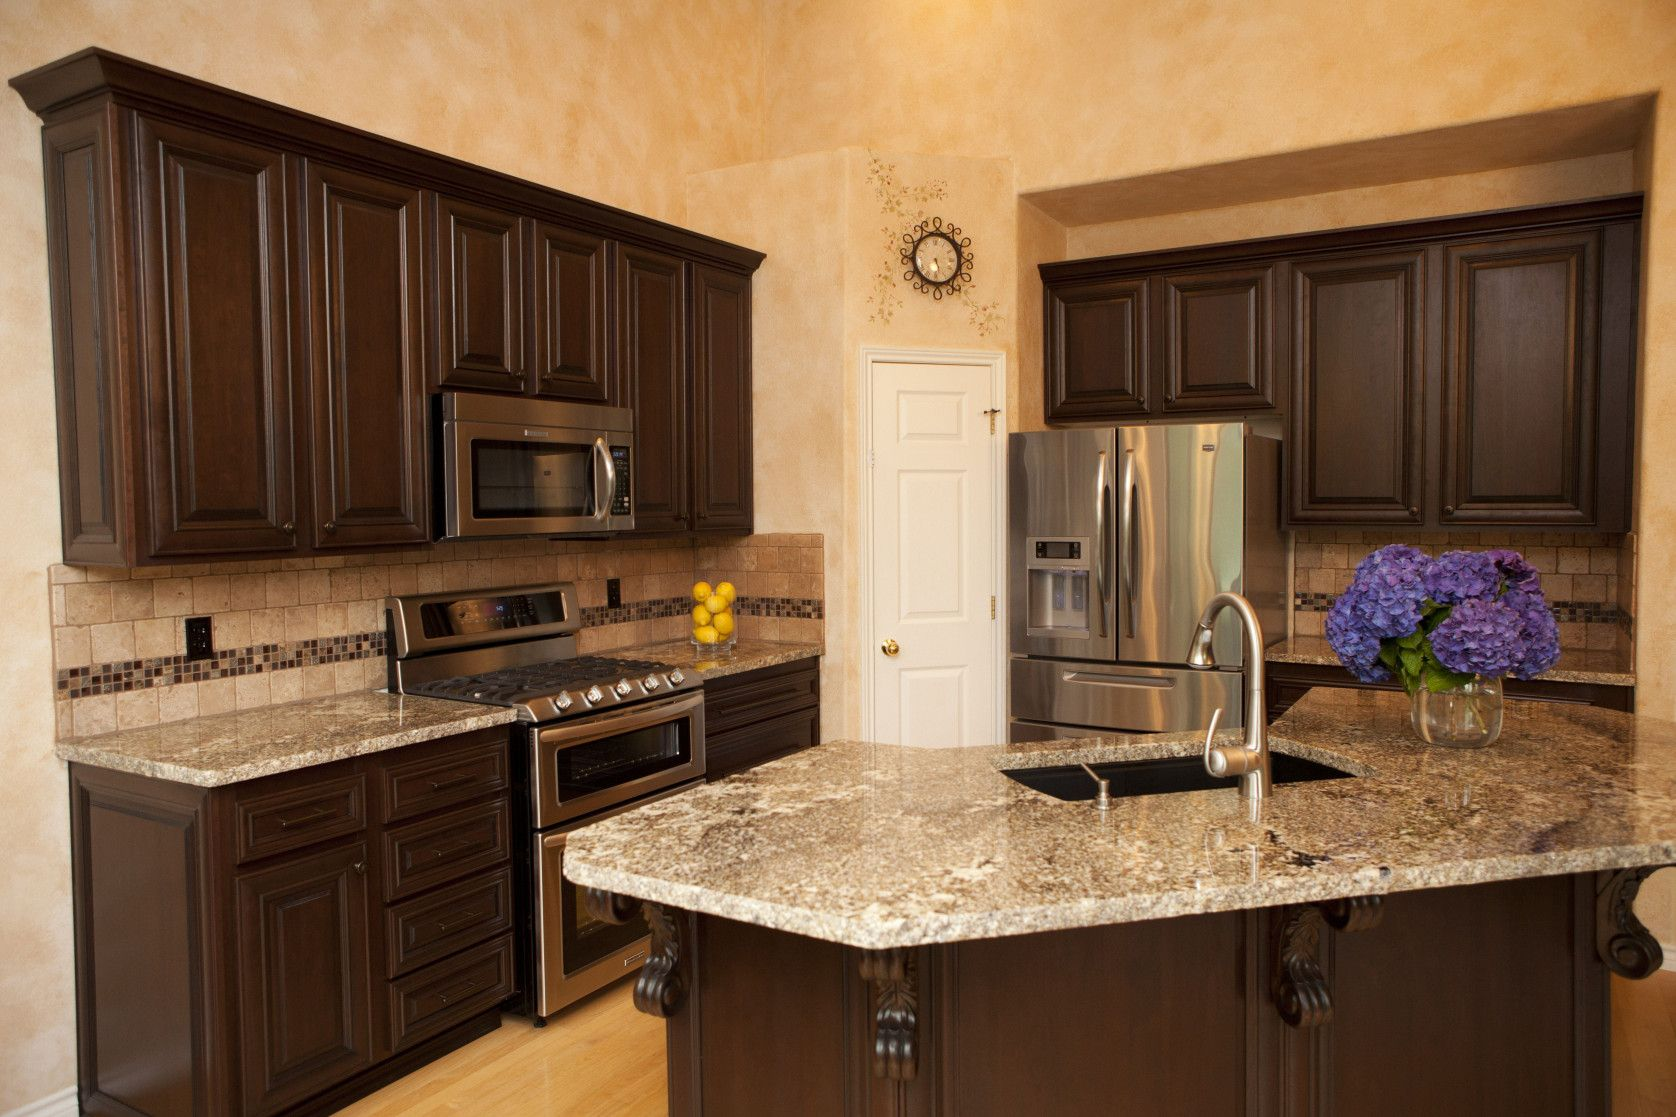 2018 What is the Cost Of Refacing Kitchen